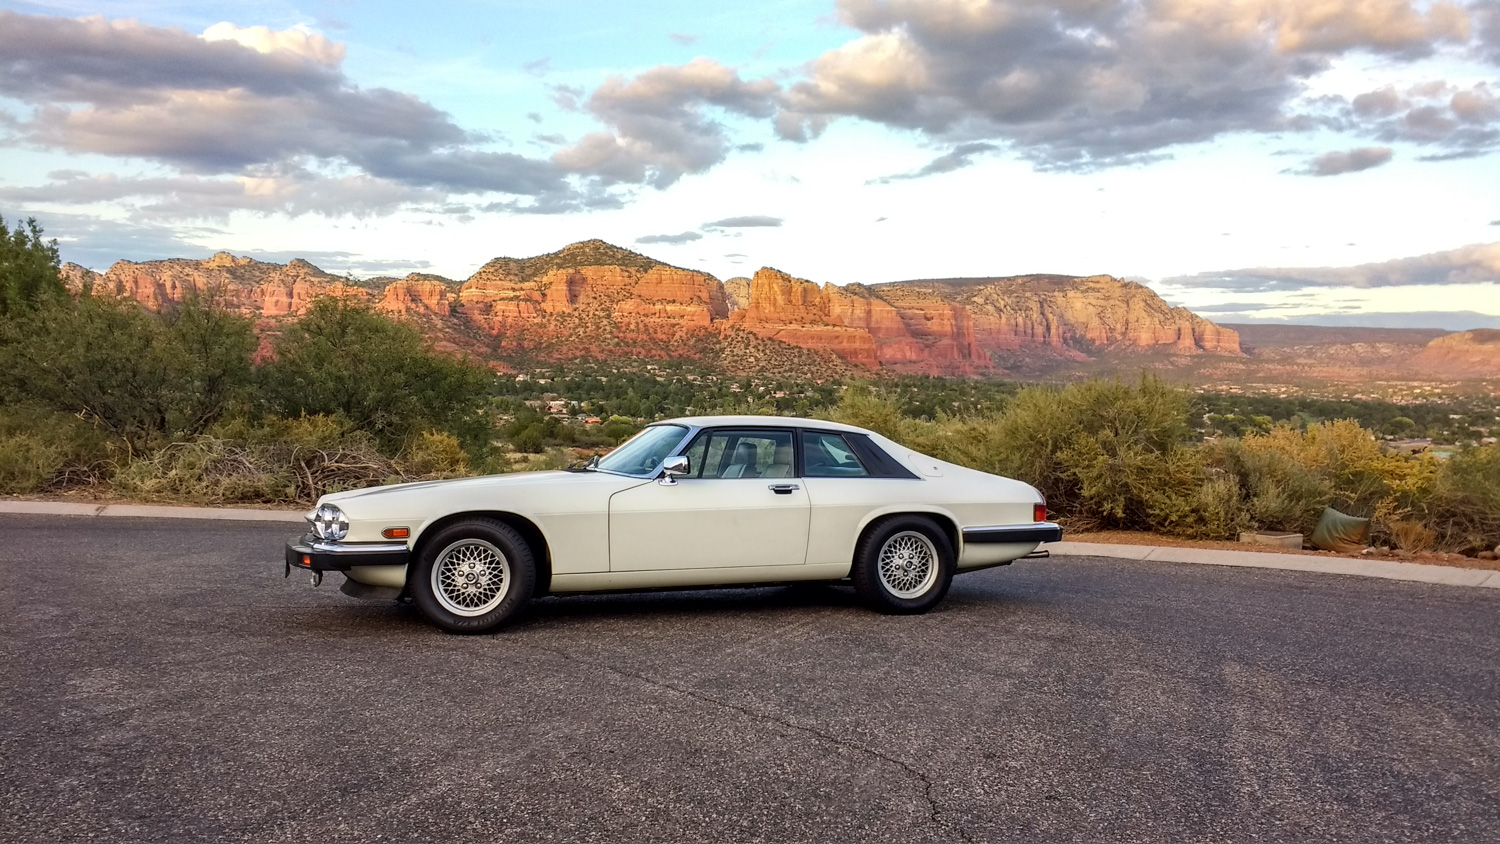 1990 Jaguar XJ-S mountains